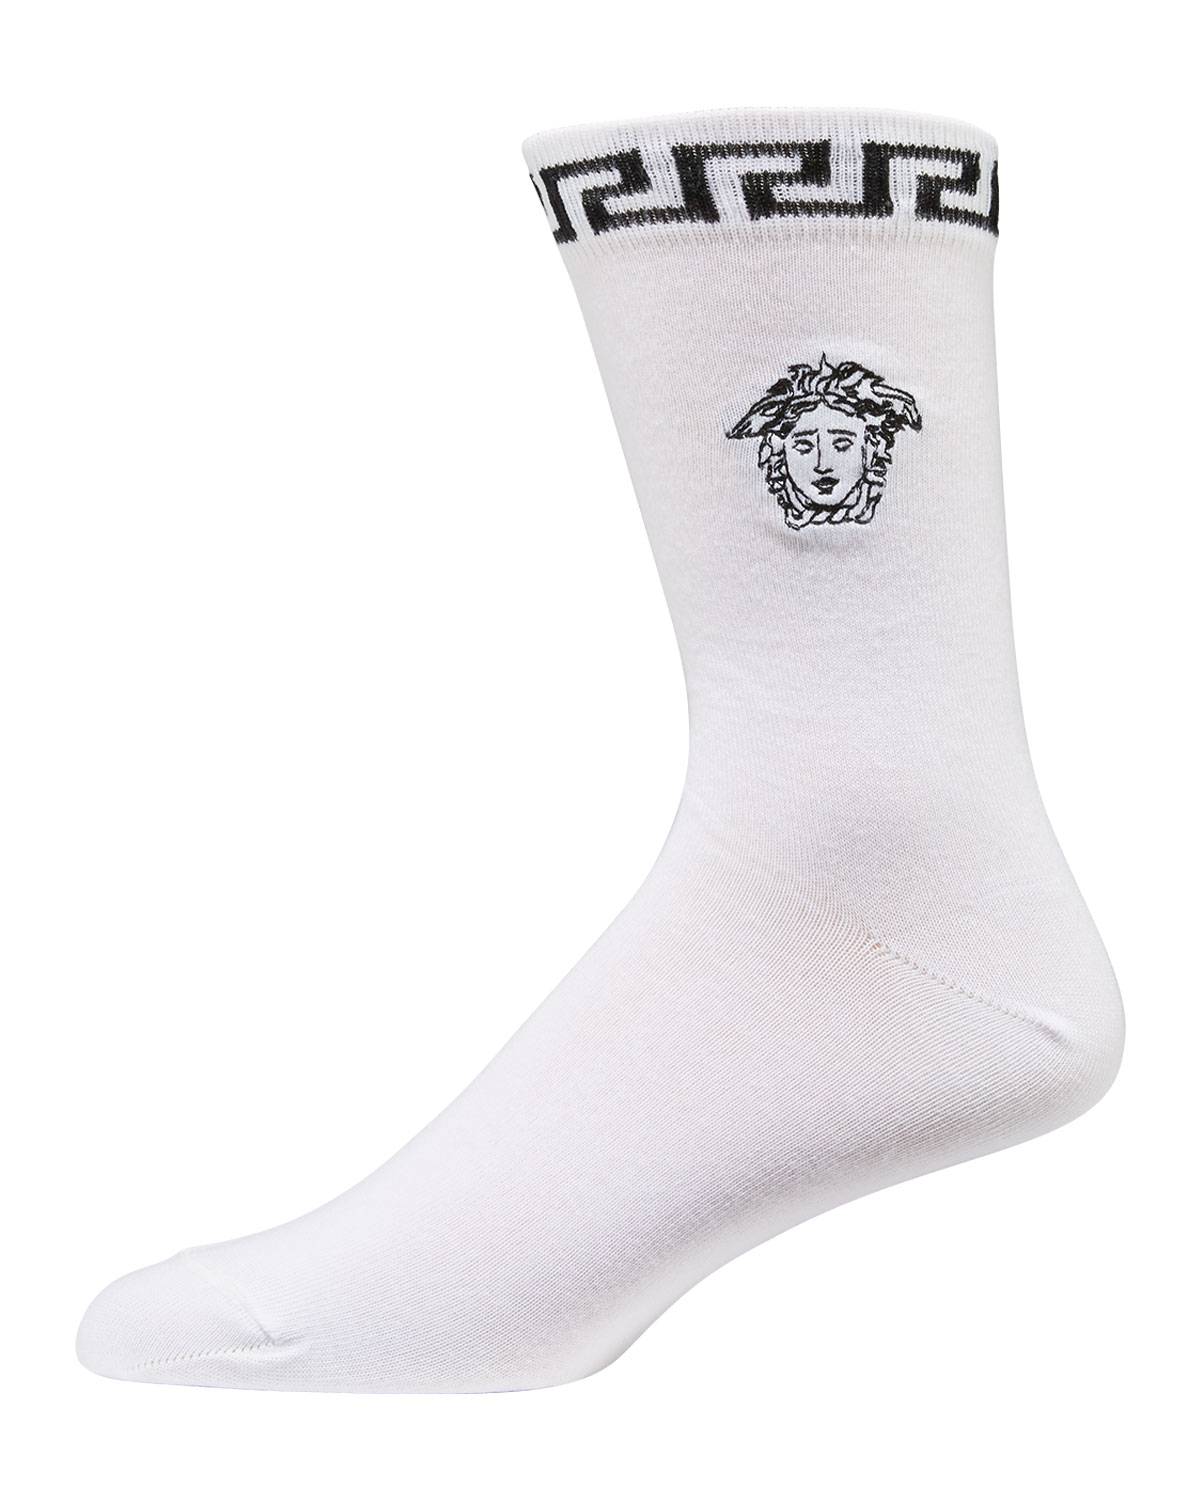 Versace Men's Signature Medusa Head/Greek Key Socks In White/Black